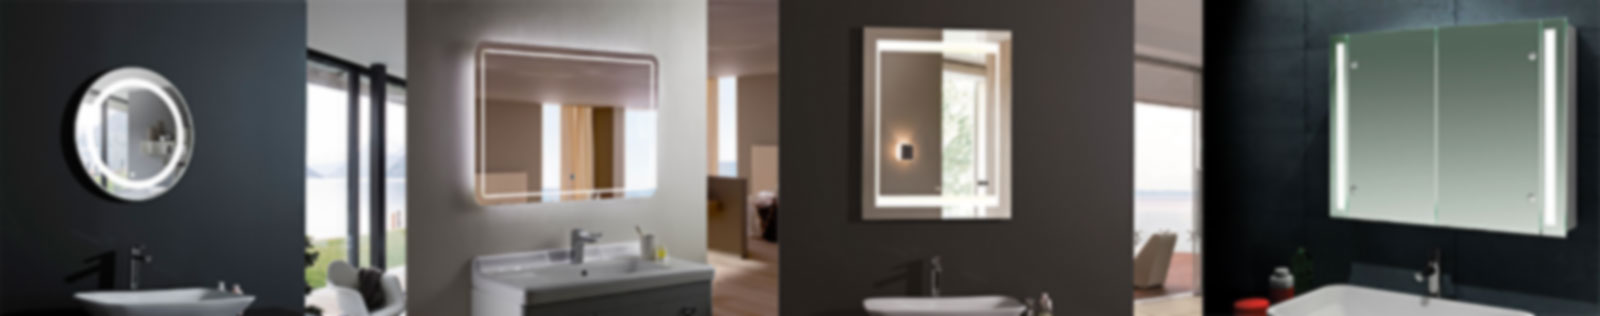 Led bathroom mirror illuminated mirror cabinet Bathroom cabinet manufacturers